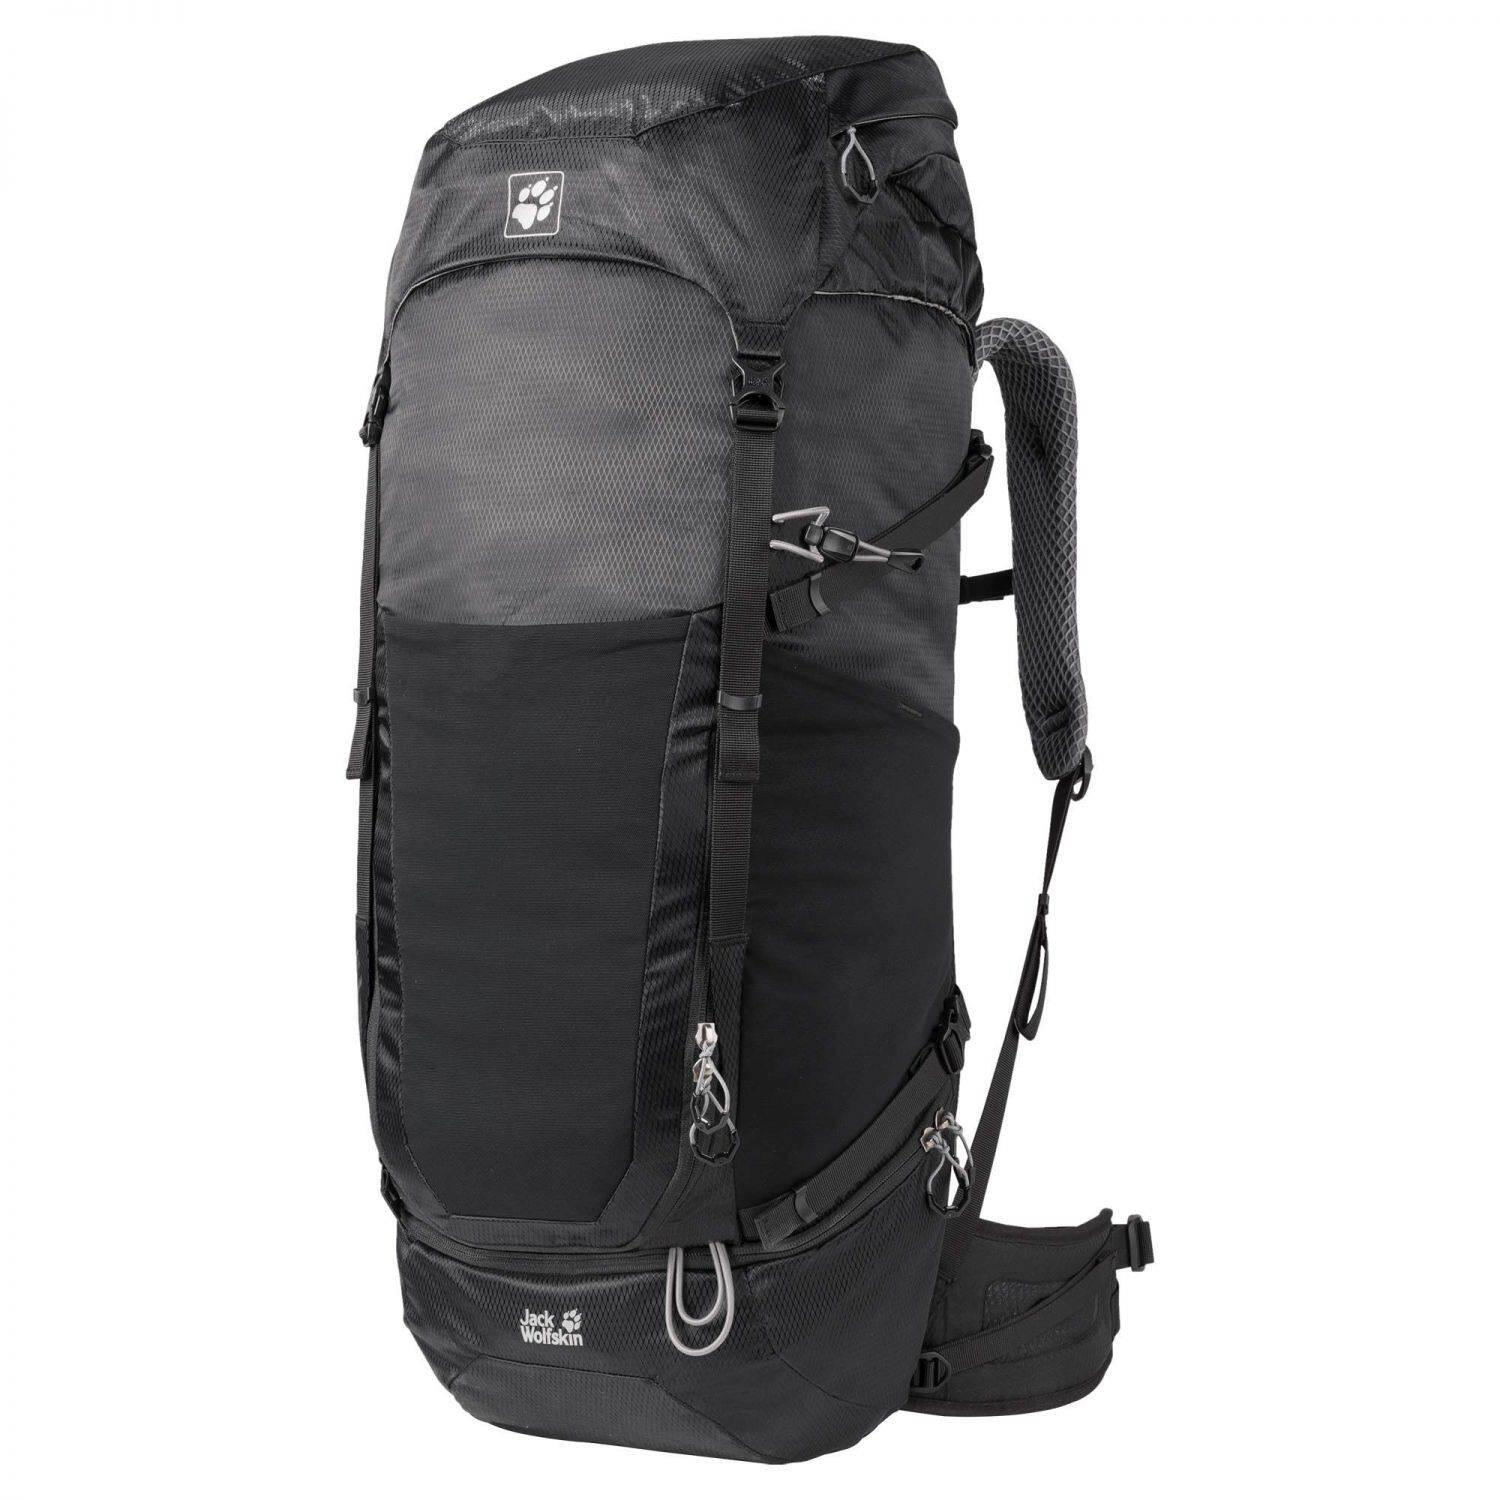 jack-wolfskin-kalari-kingston-kit-56-16-reiseset-farbe-6000-black-